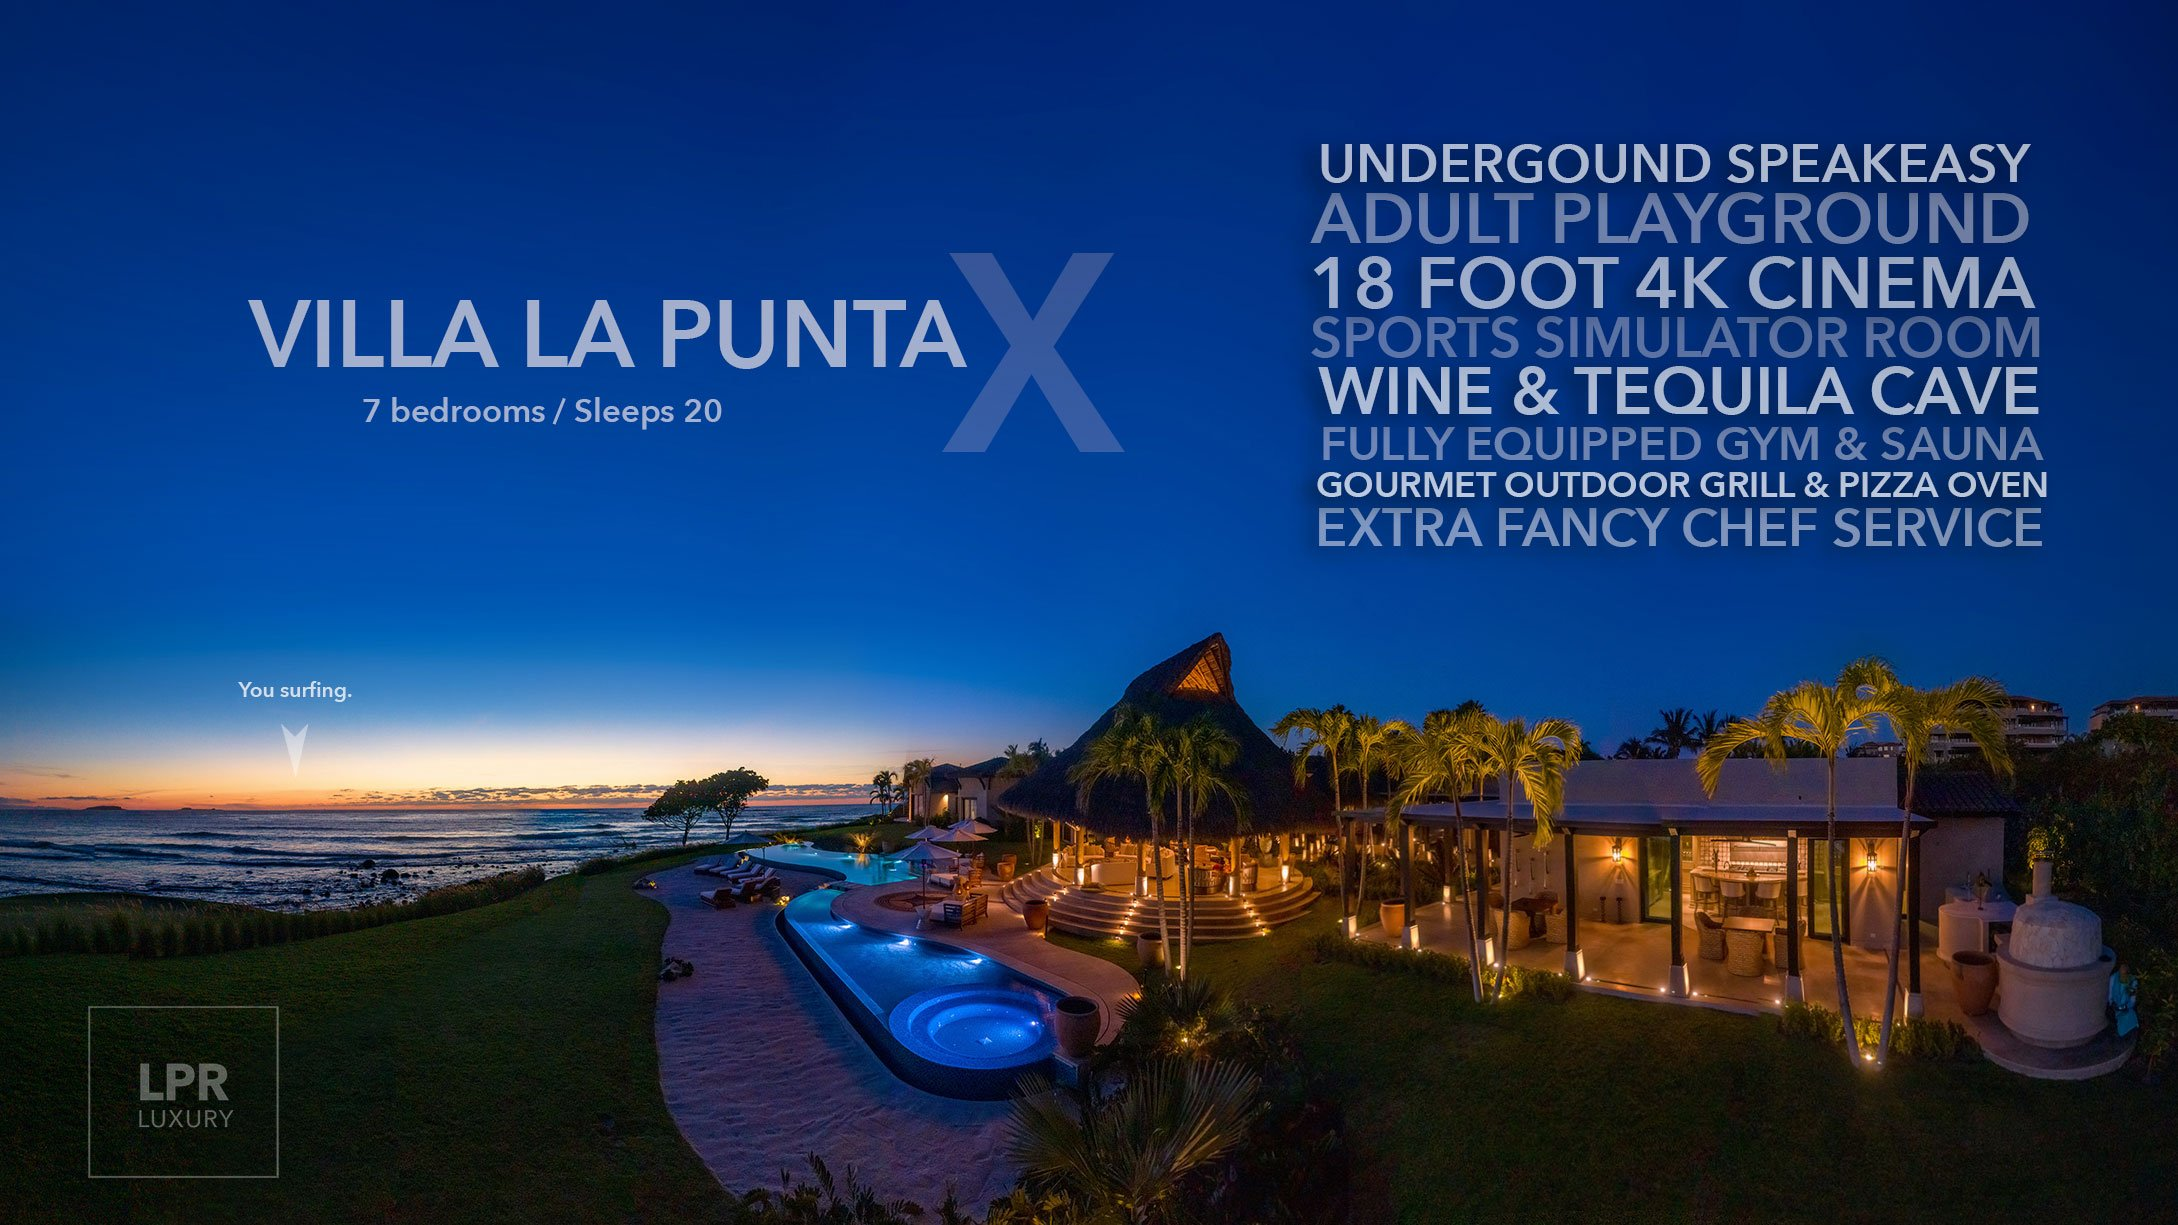 Villa La Punta Estates X - Ultra luxury Punta Mita beachfront vacation villa | Experience a secret underground speakeasy playground in Mexico.